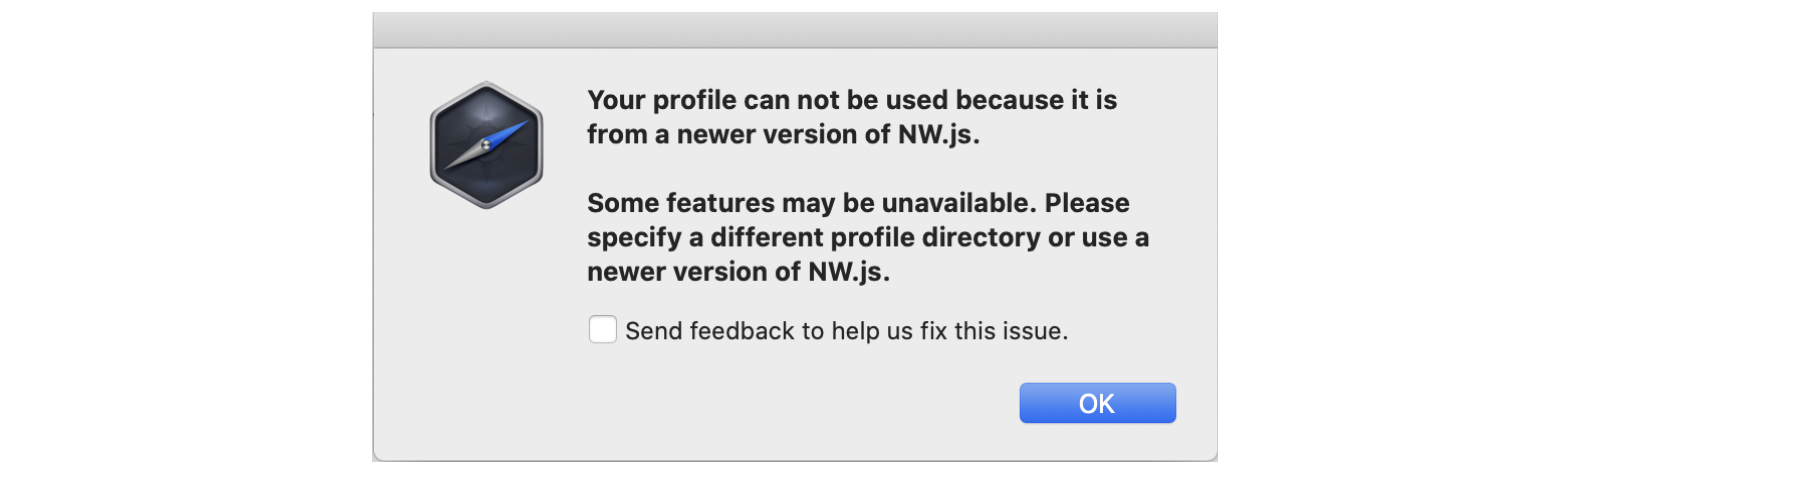 """""""Your profile can not be used because it is from a newer version of NW.js"""" alert"""